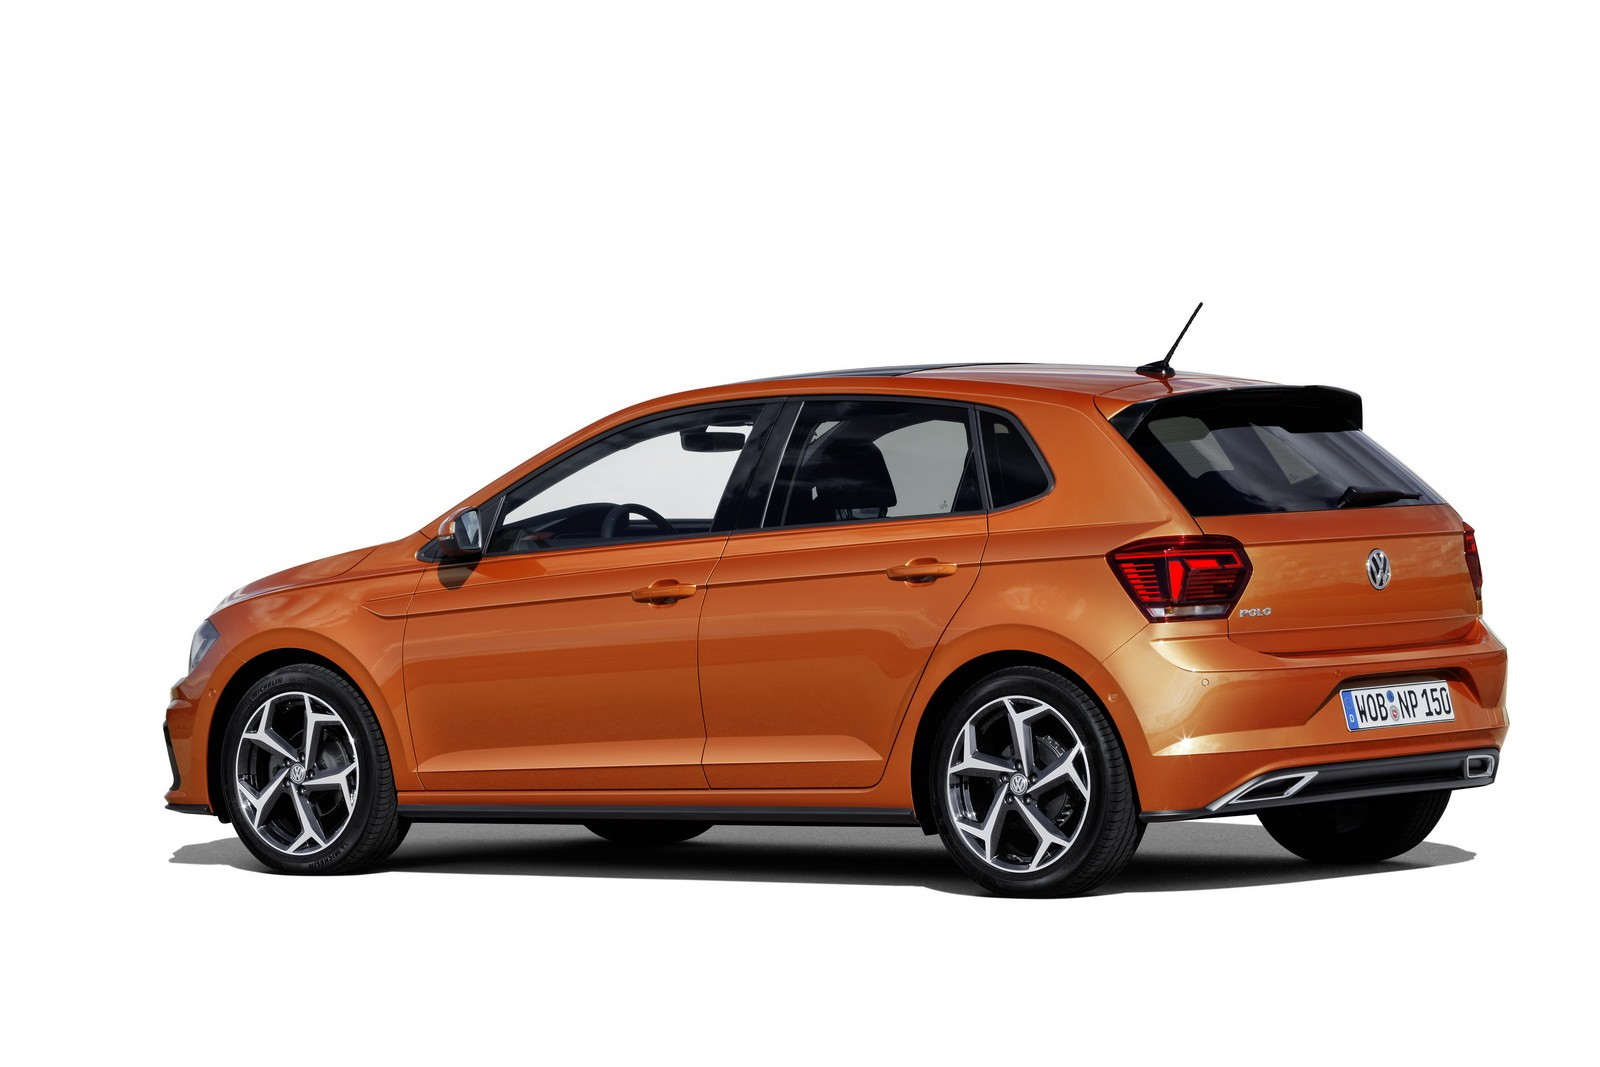 new 2018 volkswagen polo revealed has coolest dash ever. Black Bedroom Furniture Sets. Home Design Ideas